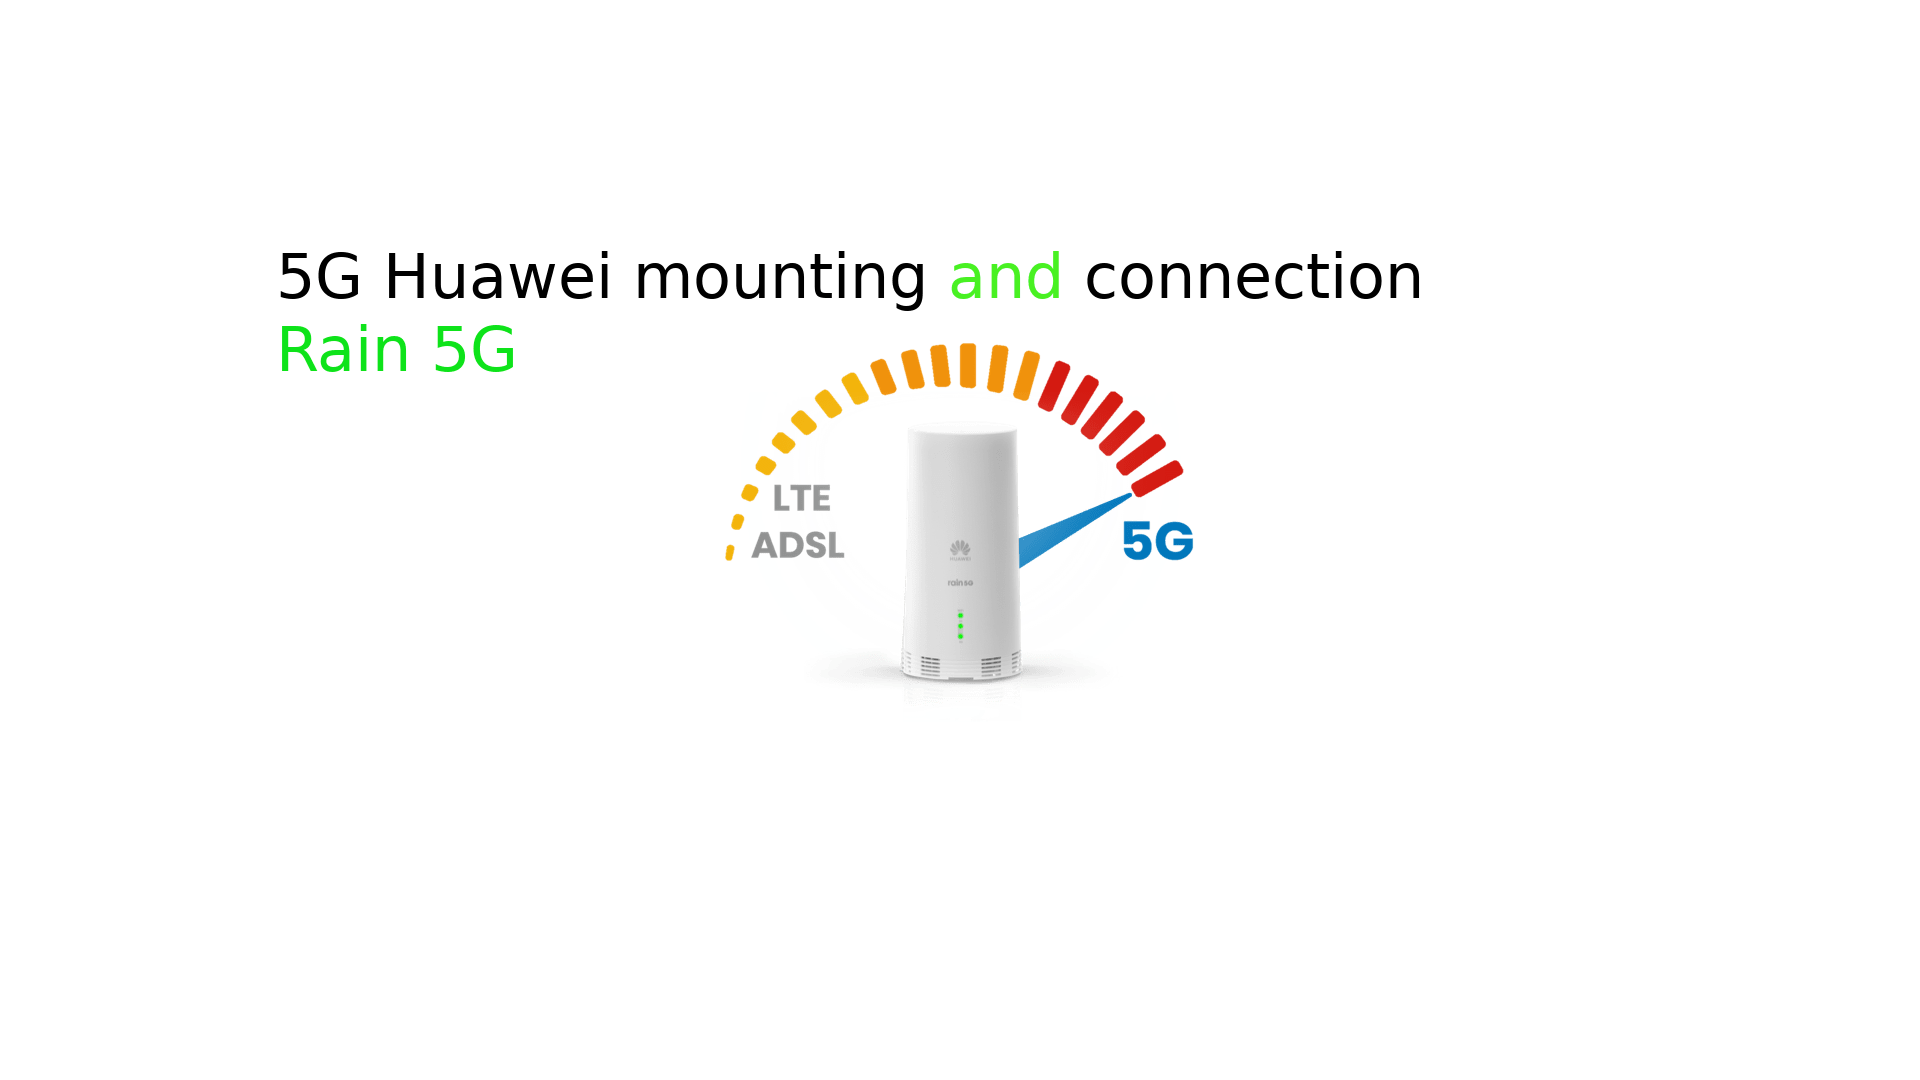 When is Rain 5G coming to Durban